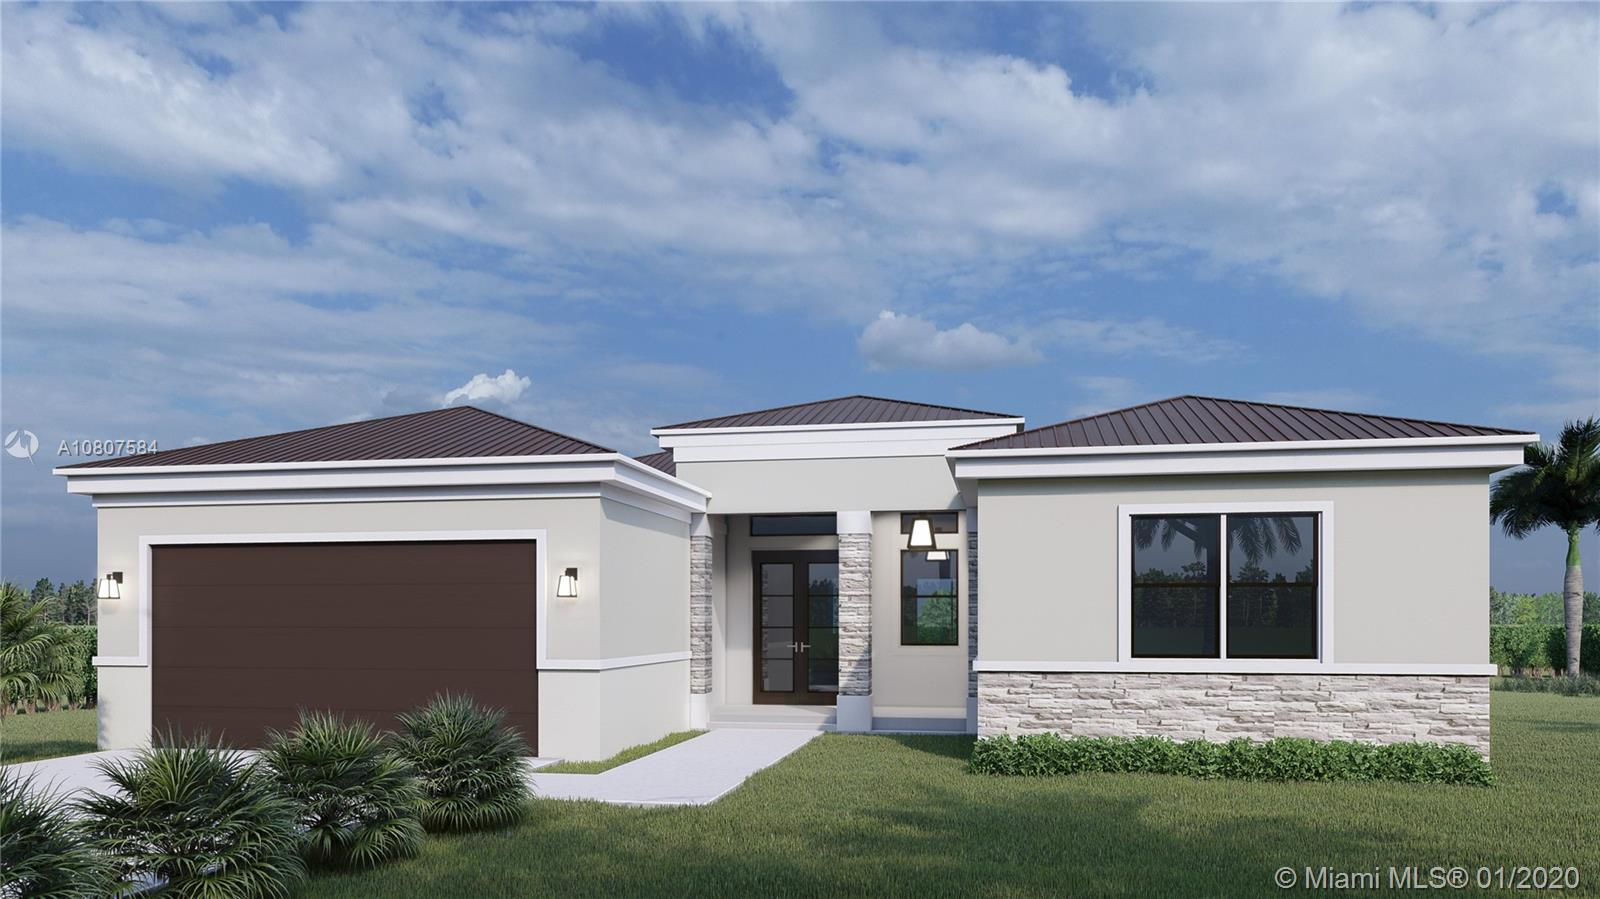 ONE PRE-CONSTRUCTION HOME REMAINING ON A 1/2 ACRE LOT.  CONSTRUCTION TO BEGIN IN APRIL 2020.  THIS HOME WILL HAVE 4 BEDROOMS, 3 BATHS, AND A 2 CAR GARAGE.   OPEN FLOOR PLAN WITH A HUGE COVERED TERRACE PERFECT FOR ENTERTAINING.  FEATURES WILL INCLUDE METAL ROOF. HURRICANE RESISTANT IMPACT GLASS WINDOWS, PORCELAIN TILE LIVING AREA, QUARTZ COUNTERS IN THE KITCHEN, SMART TECHNOLOGY PACKAGES AND MORE.  FOR A LIMITED TIME THE BUILDER IS OFFERING UP TO $7,500 SELLER CONTRIBUTION TOWARDS CLOSING COSTS IF USING PREFERRED TITLE COMPANY AND LENDER.  THERE IS STILL TIME TO SELECT YOUR OWN FINISHES.  CALL NOW FOR MORE INFO